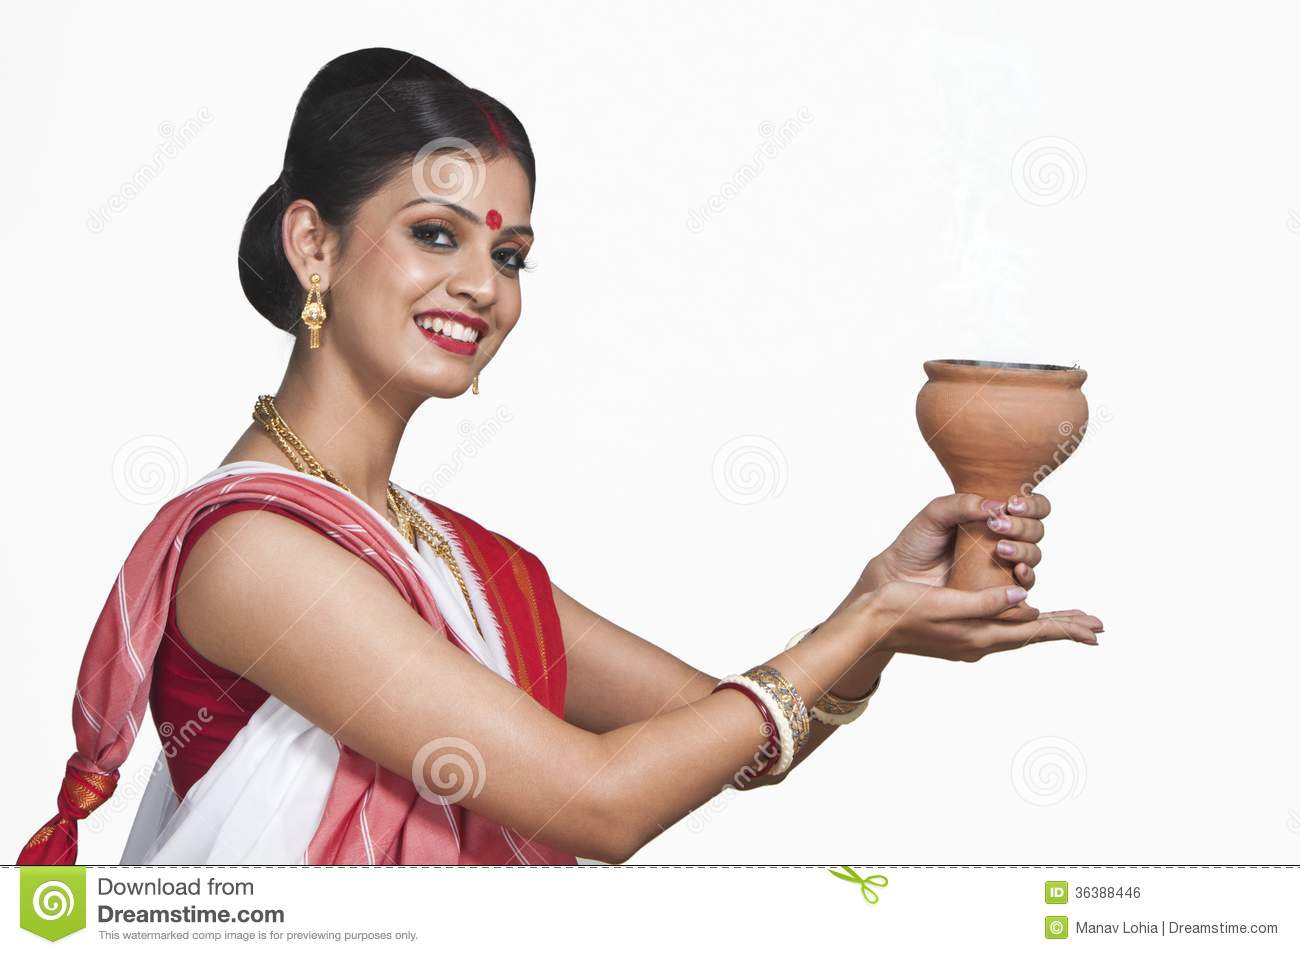 Bengali woman praying stock photo  Image of culture, adult - 36388446